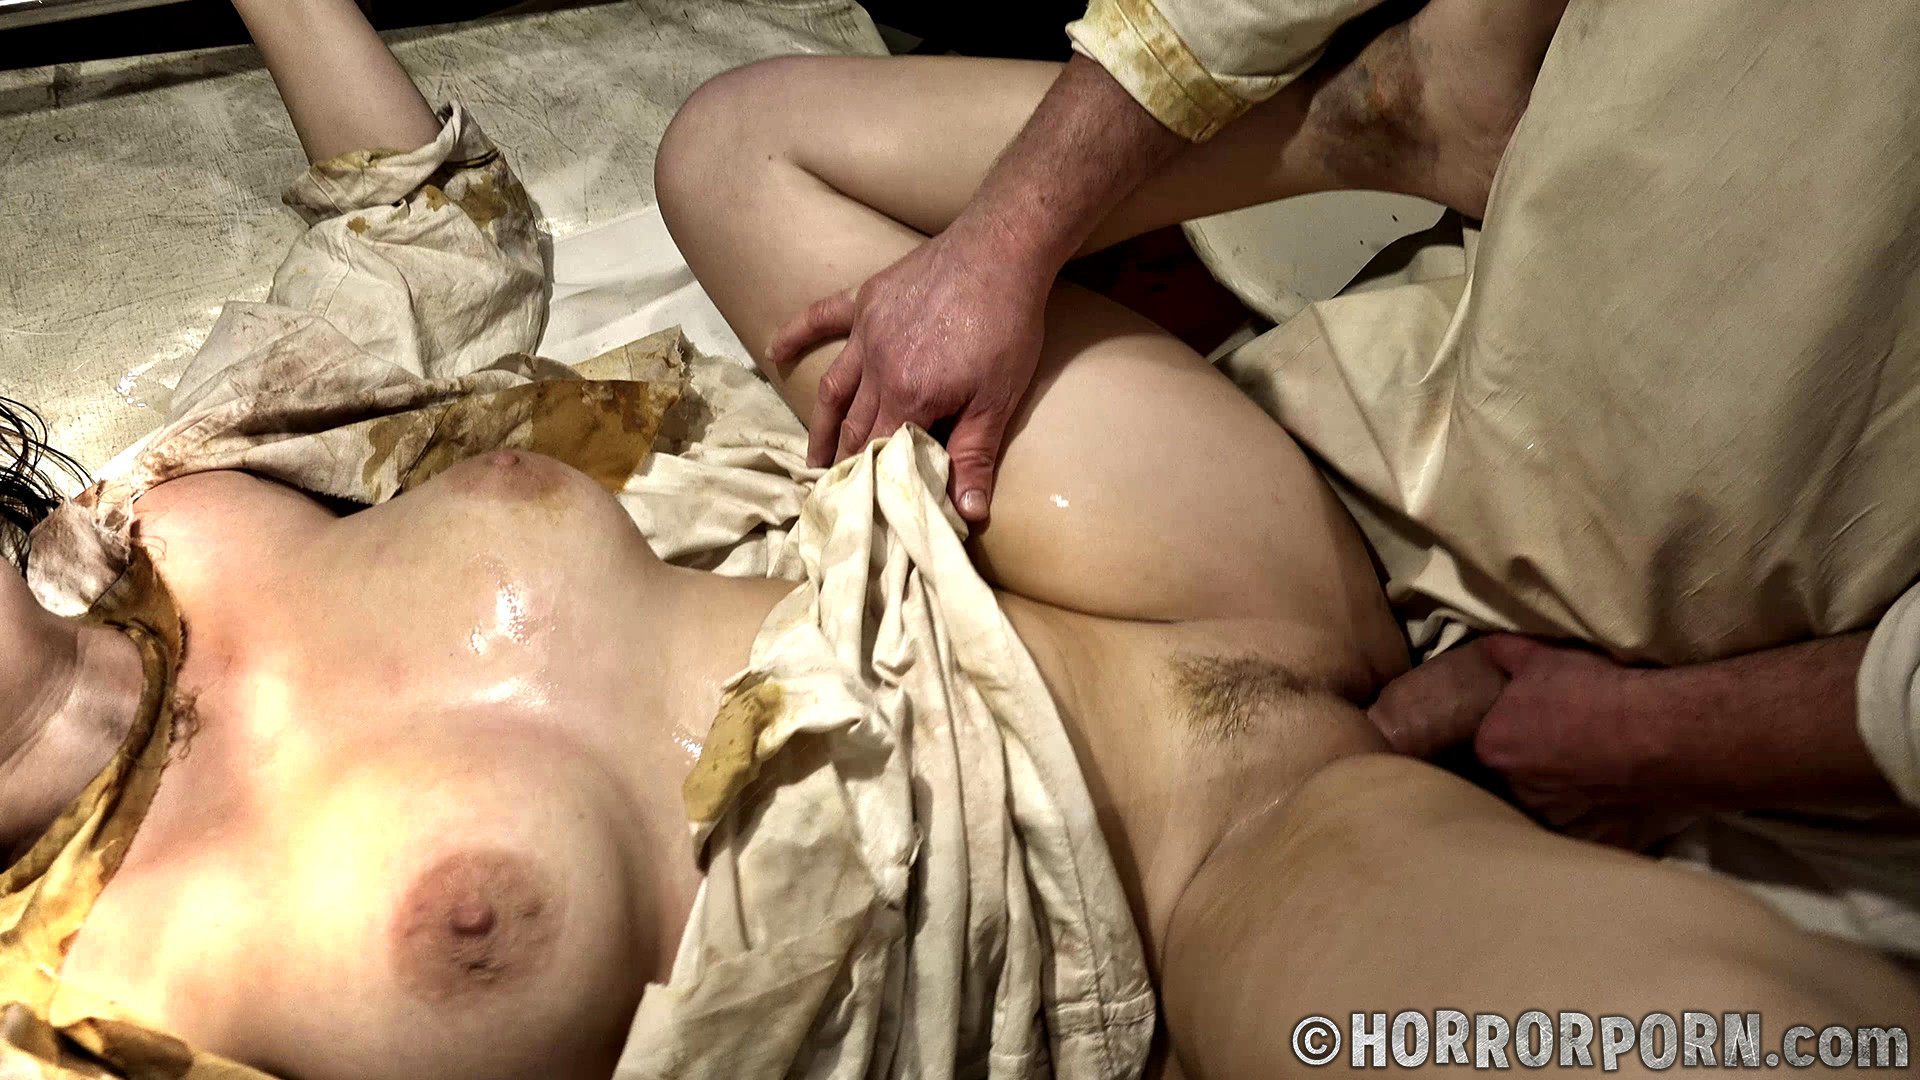 Sleeping young boobs nude with rape scene parts nylon used